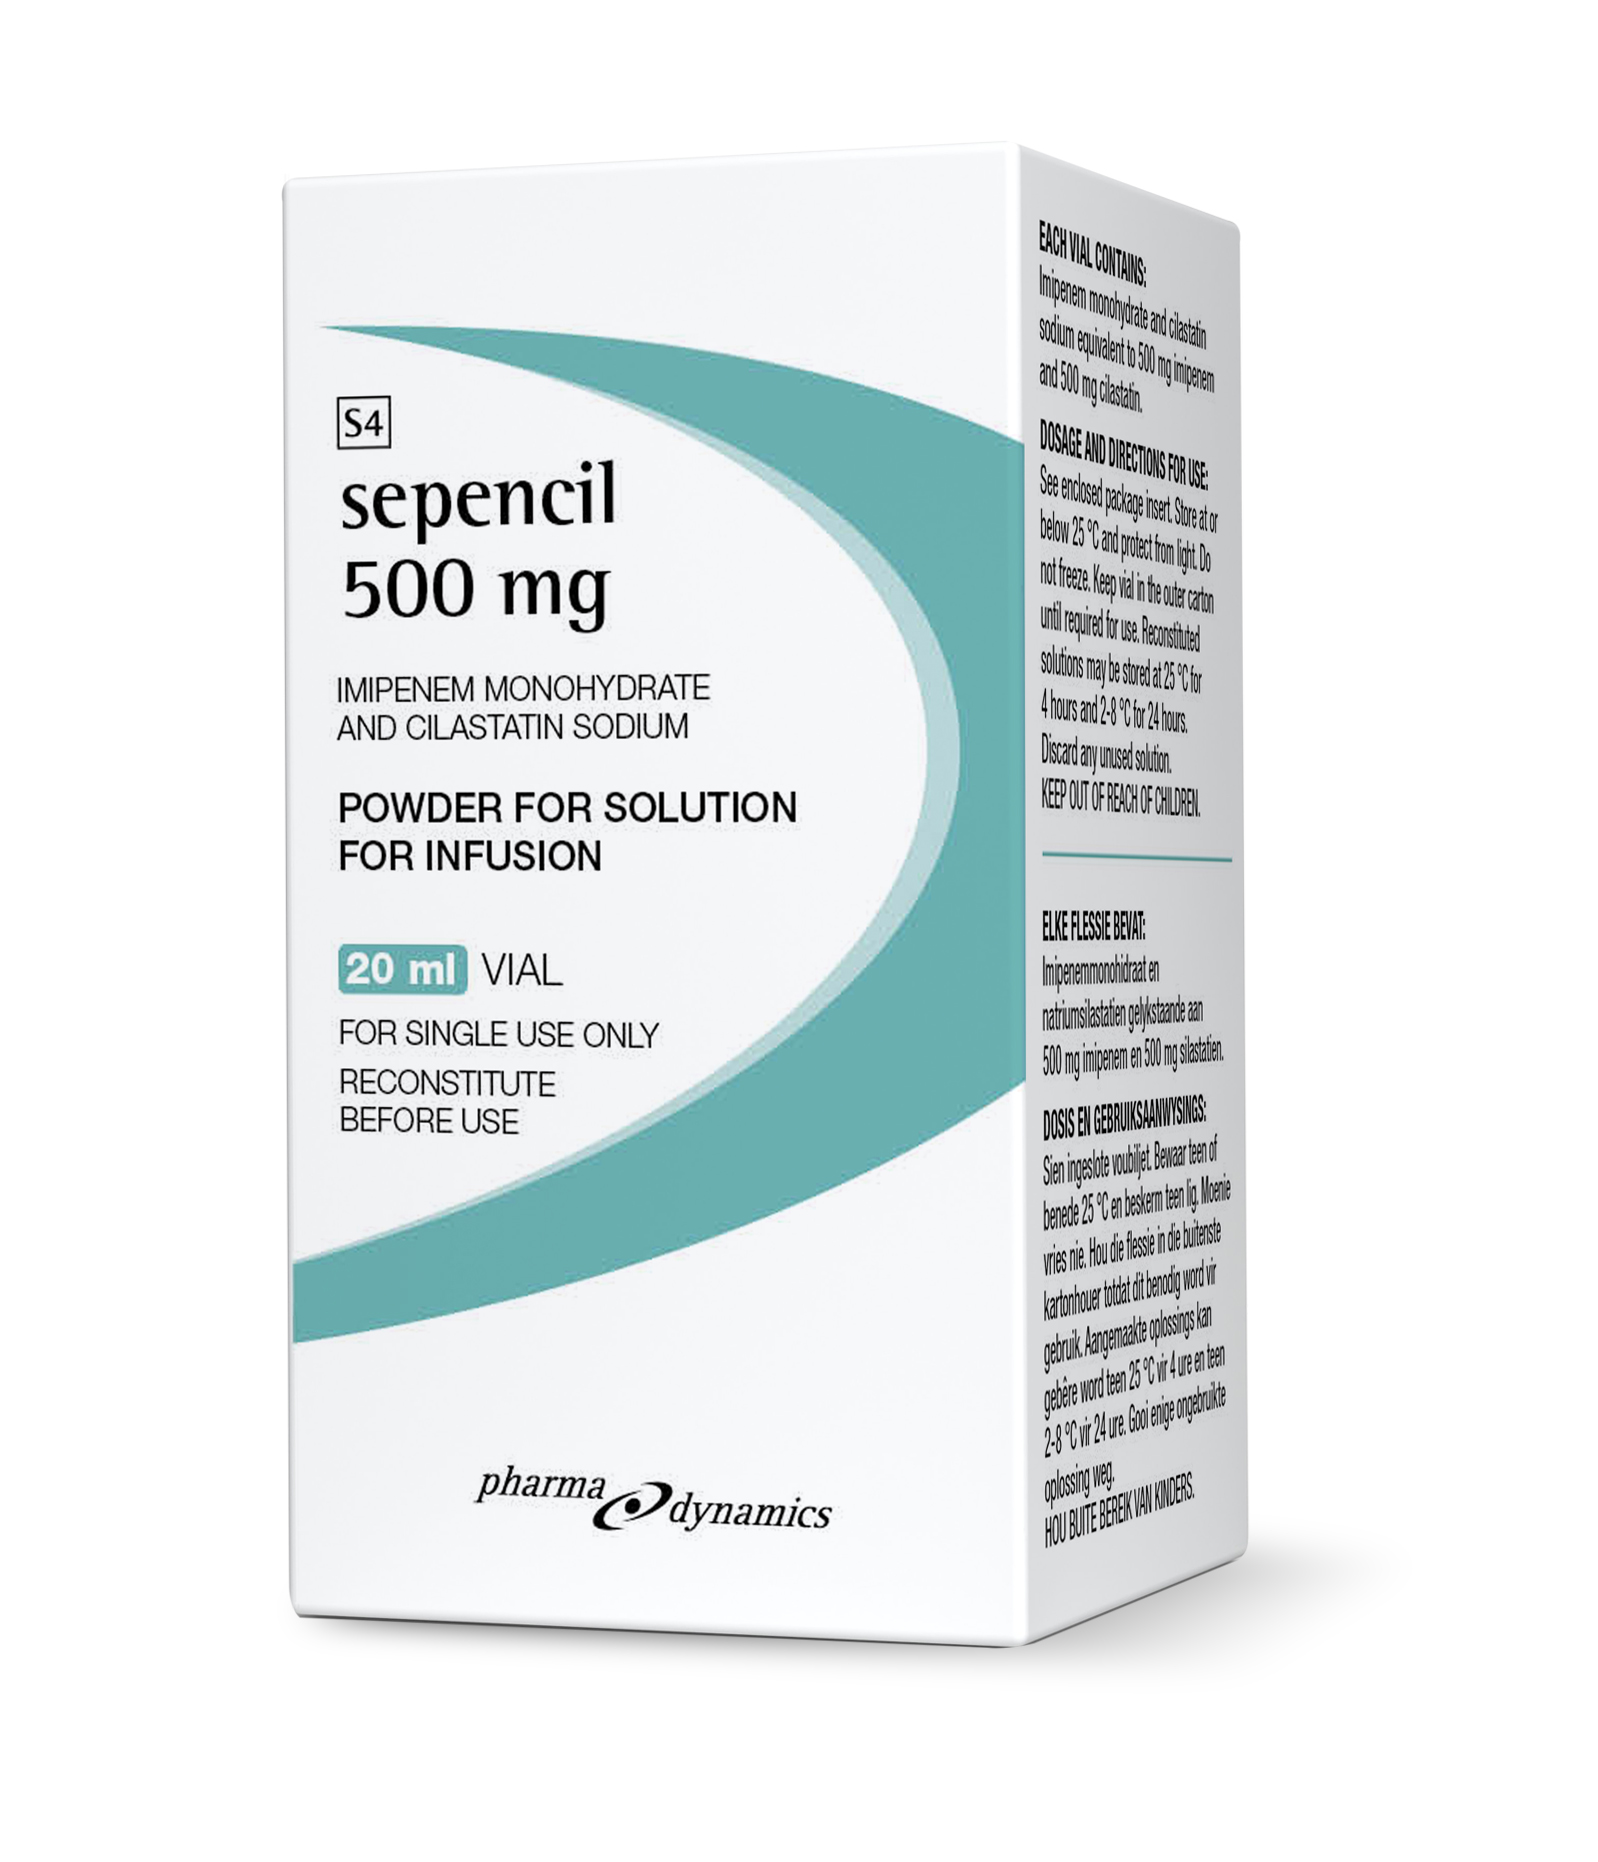 New affordable broad-spectrum IV antibiotic launched to ...